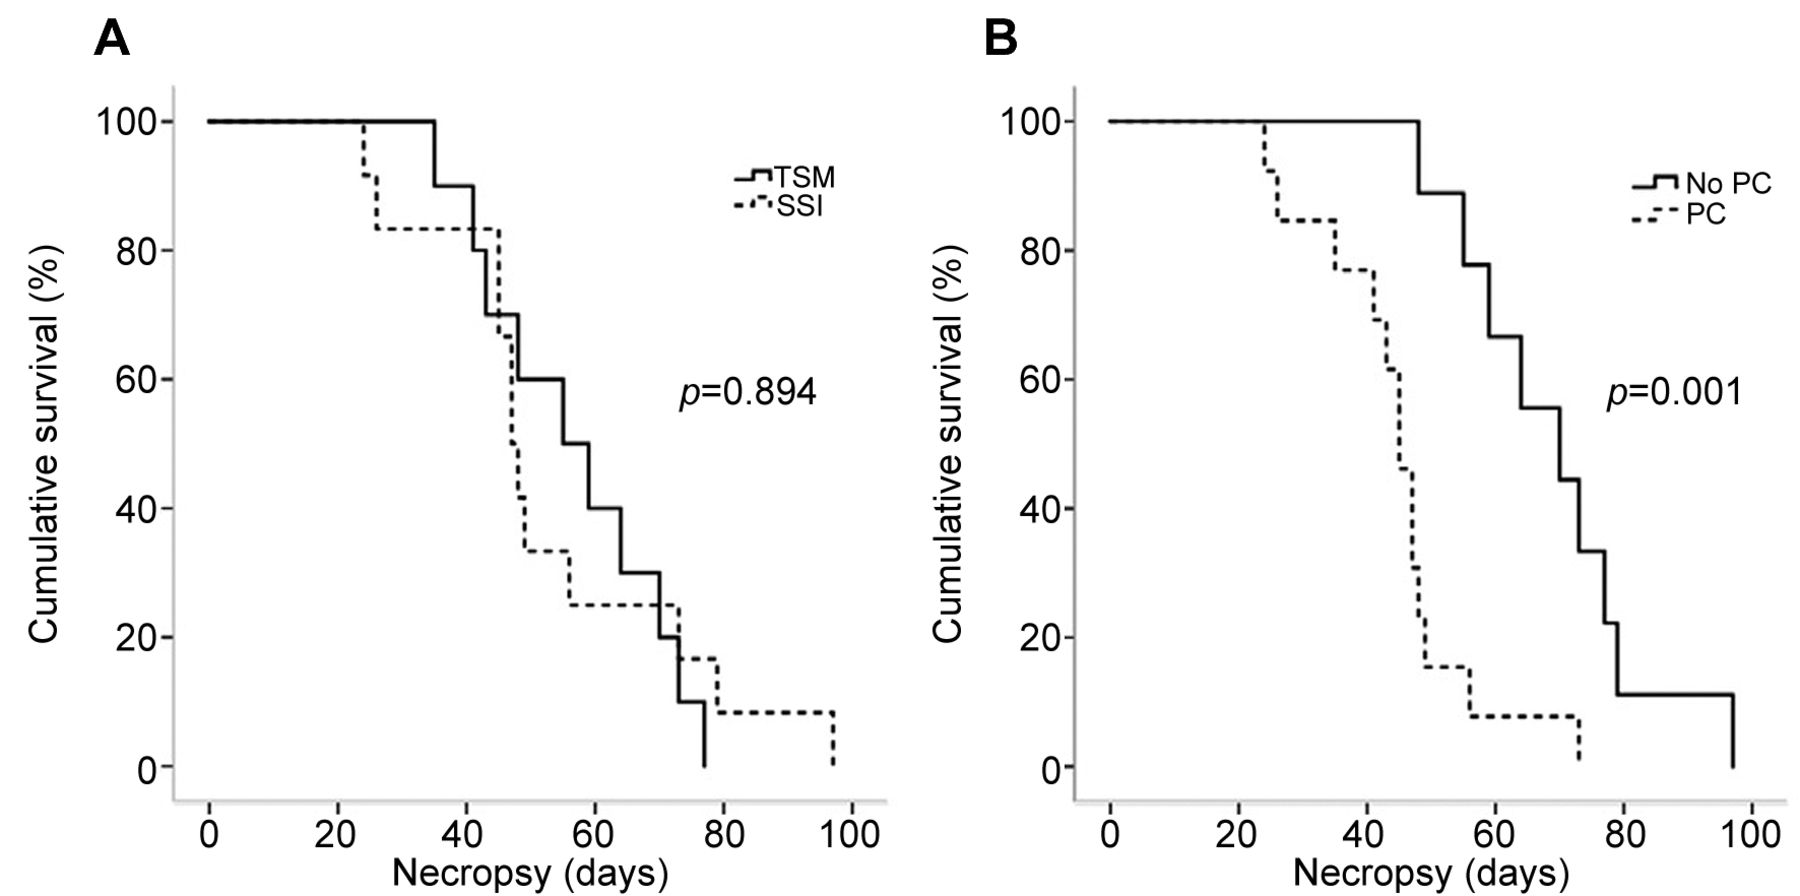 Tumor Sealing Surgical Orthotopic Implantation Of Human Colon Cancer In Nude Mice Induces Clinically Relevant Metastases Without Early Peritoneal Carcinomatosis